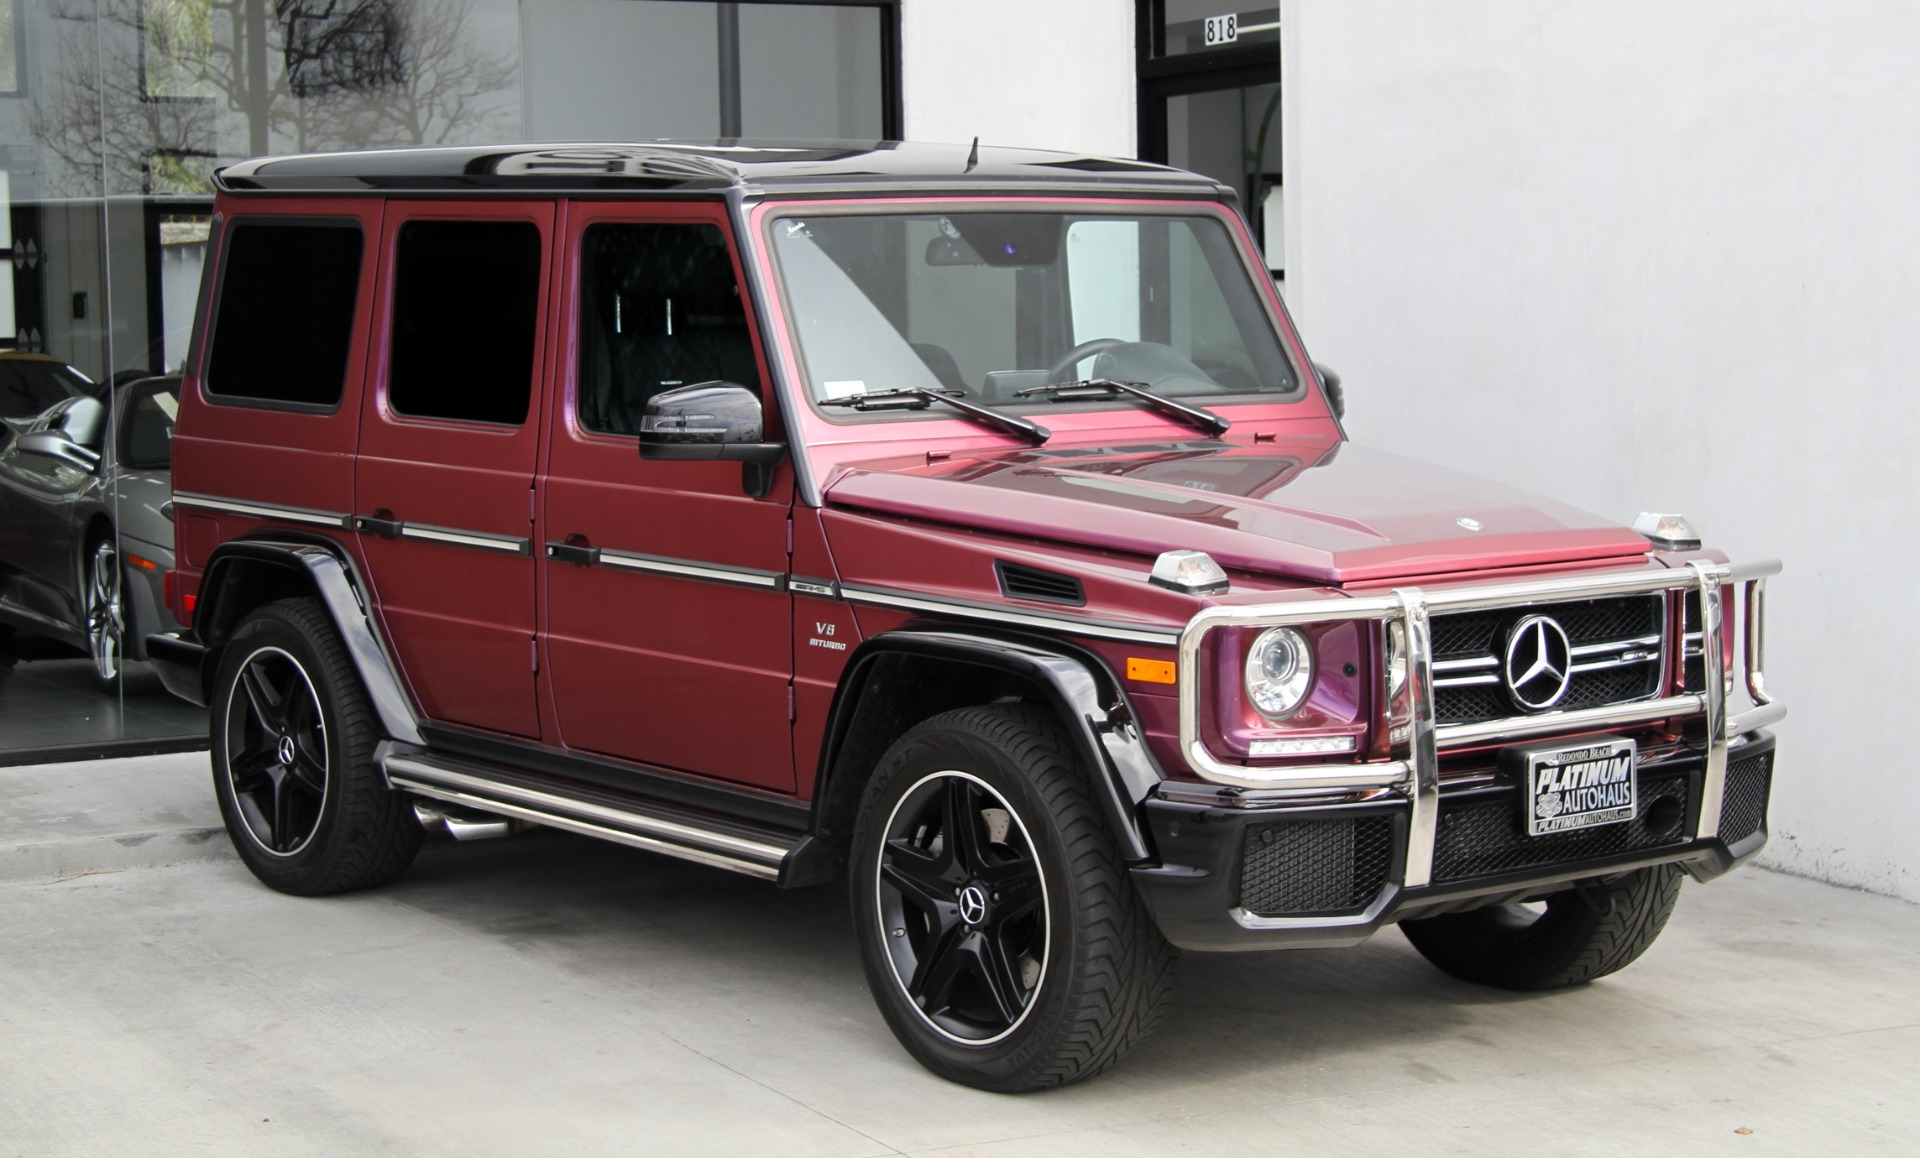 2015 mercedes benz g class g 63 amg amg studio package stock 6091 for sale near redondo. Black Bedroom Furniture Sets. Home Design Ideas